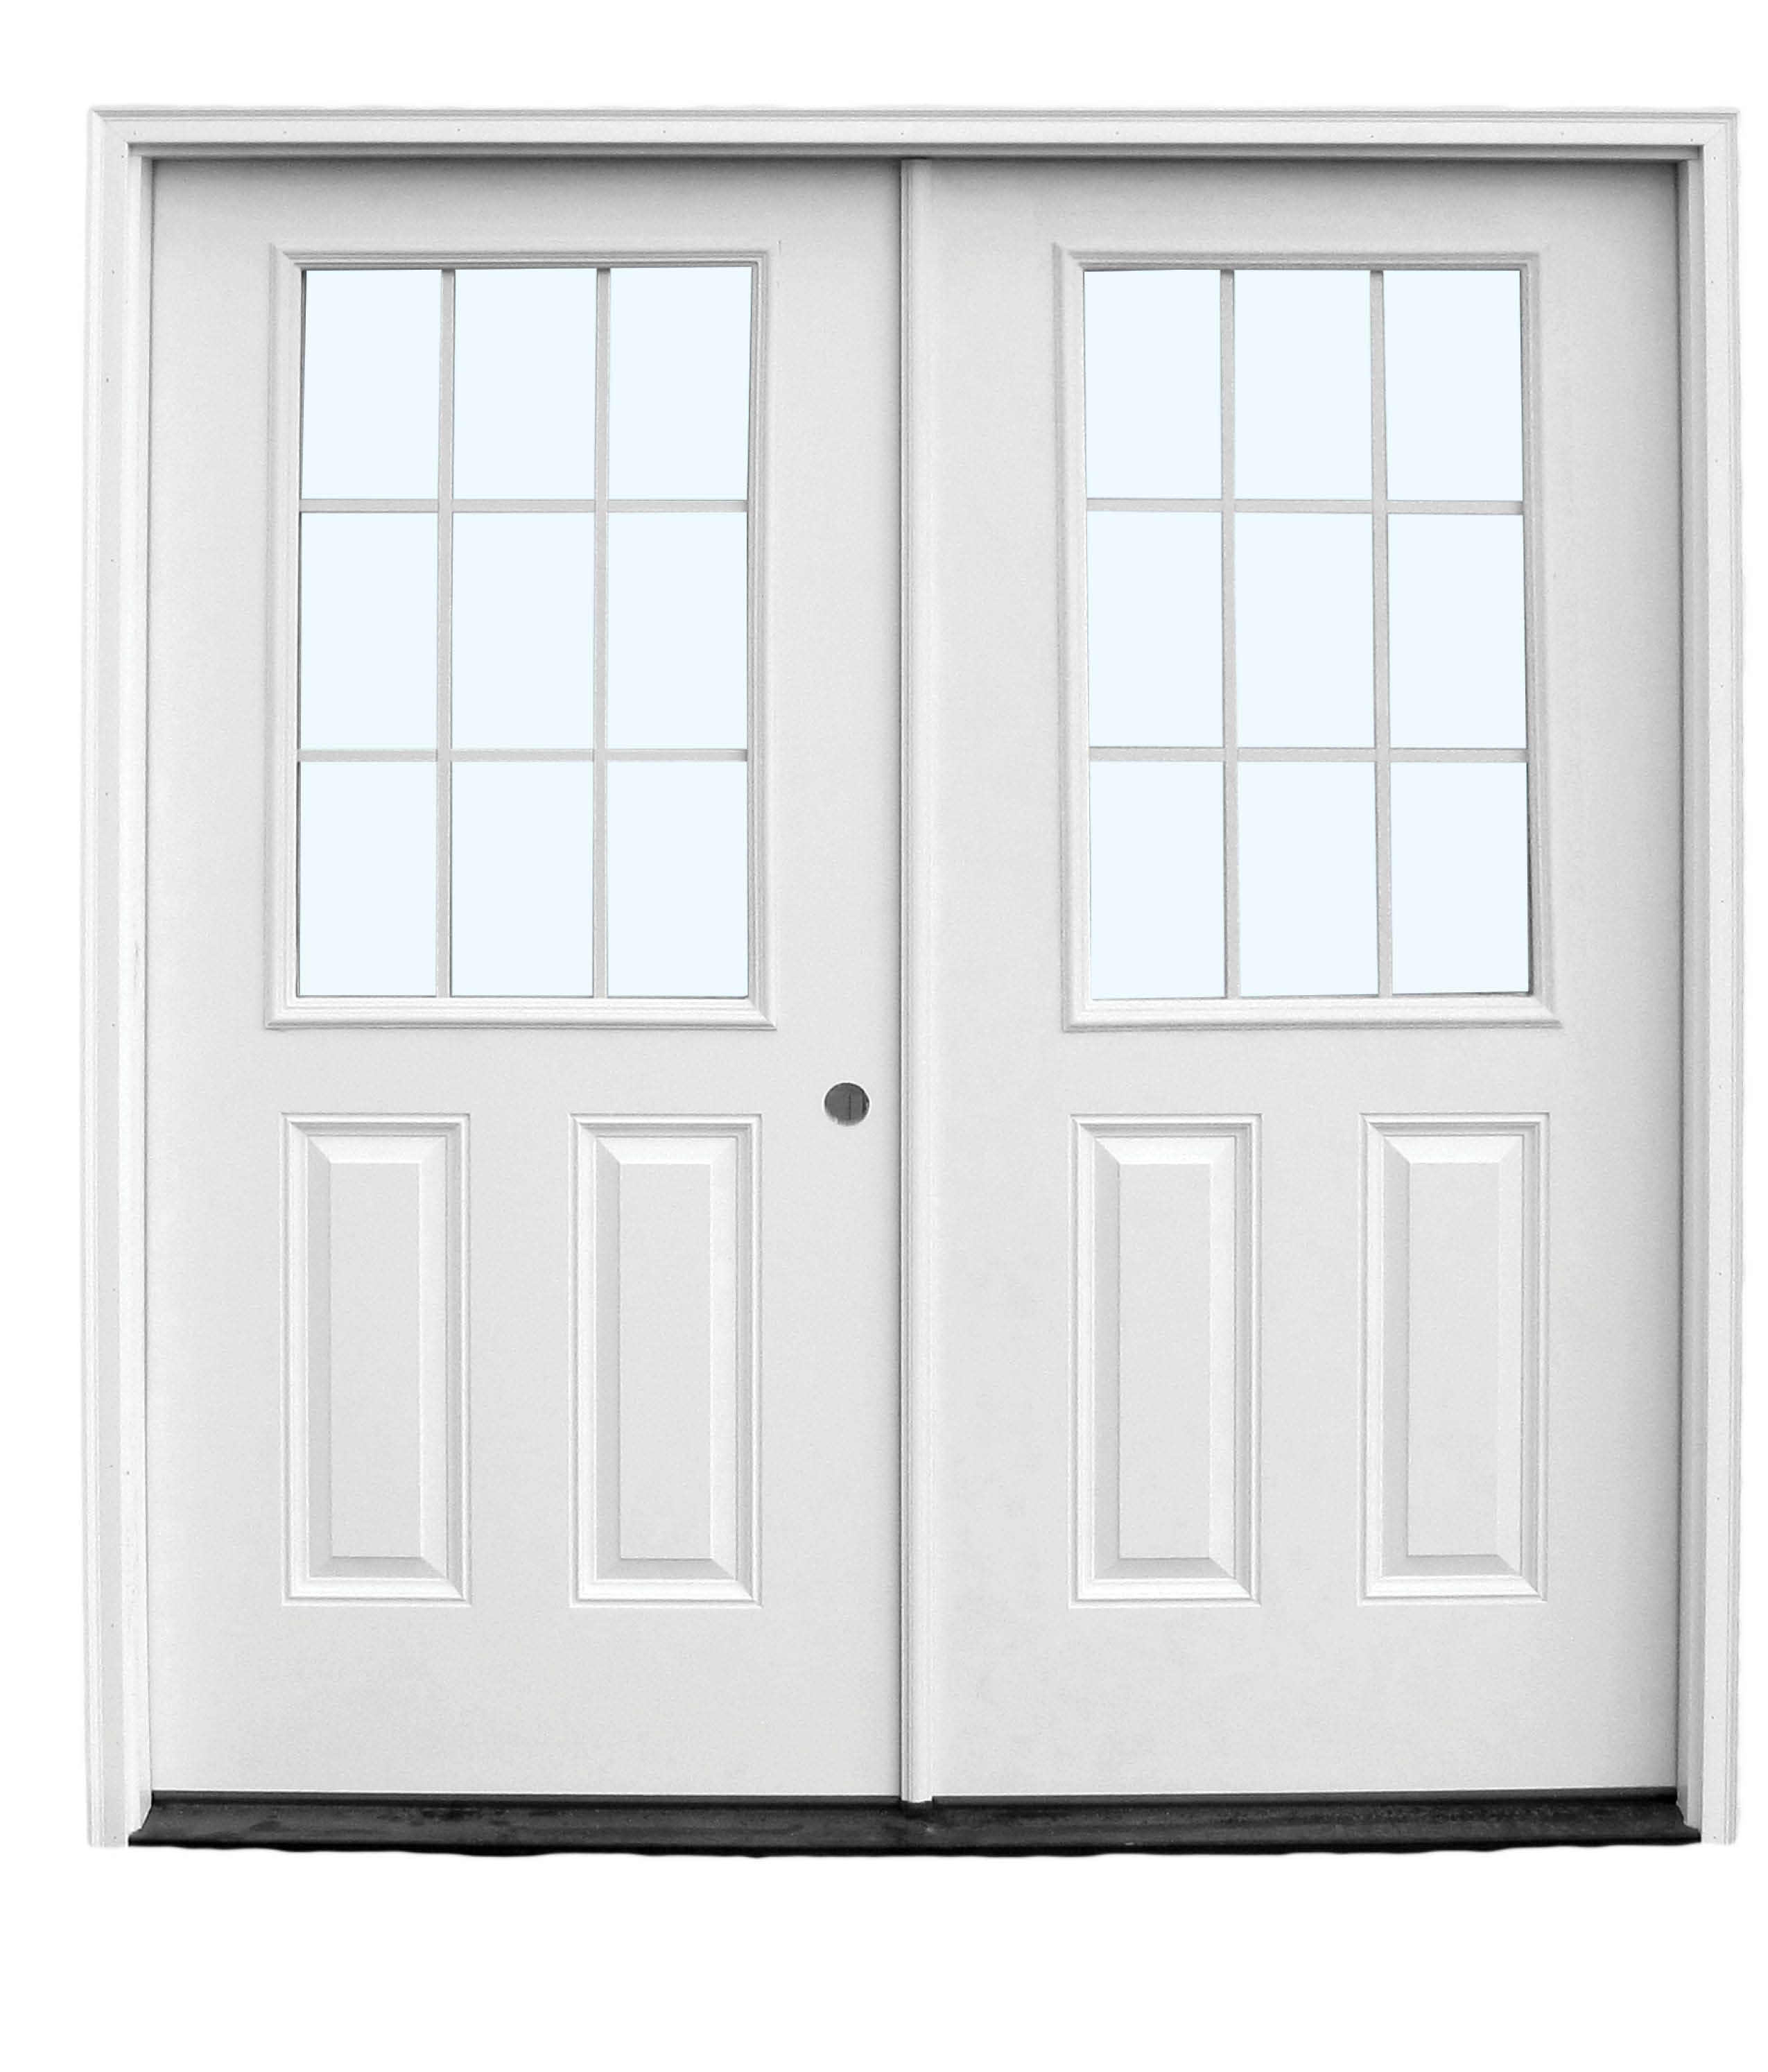 Fiberglass entry doors a b martin building supplies for 9 light exterior door